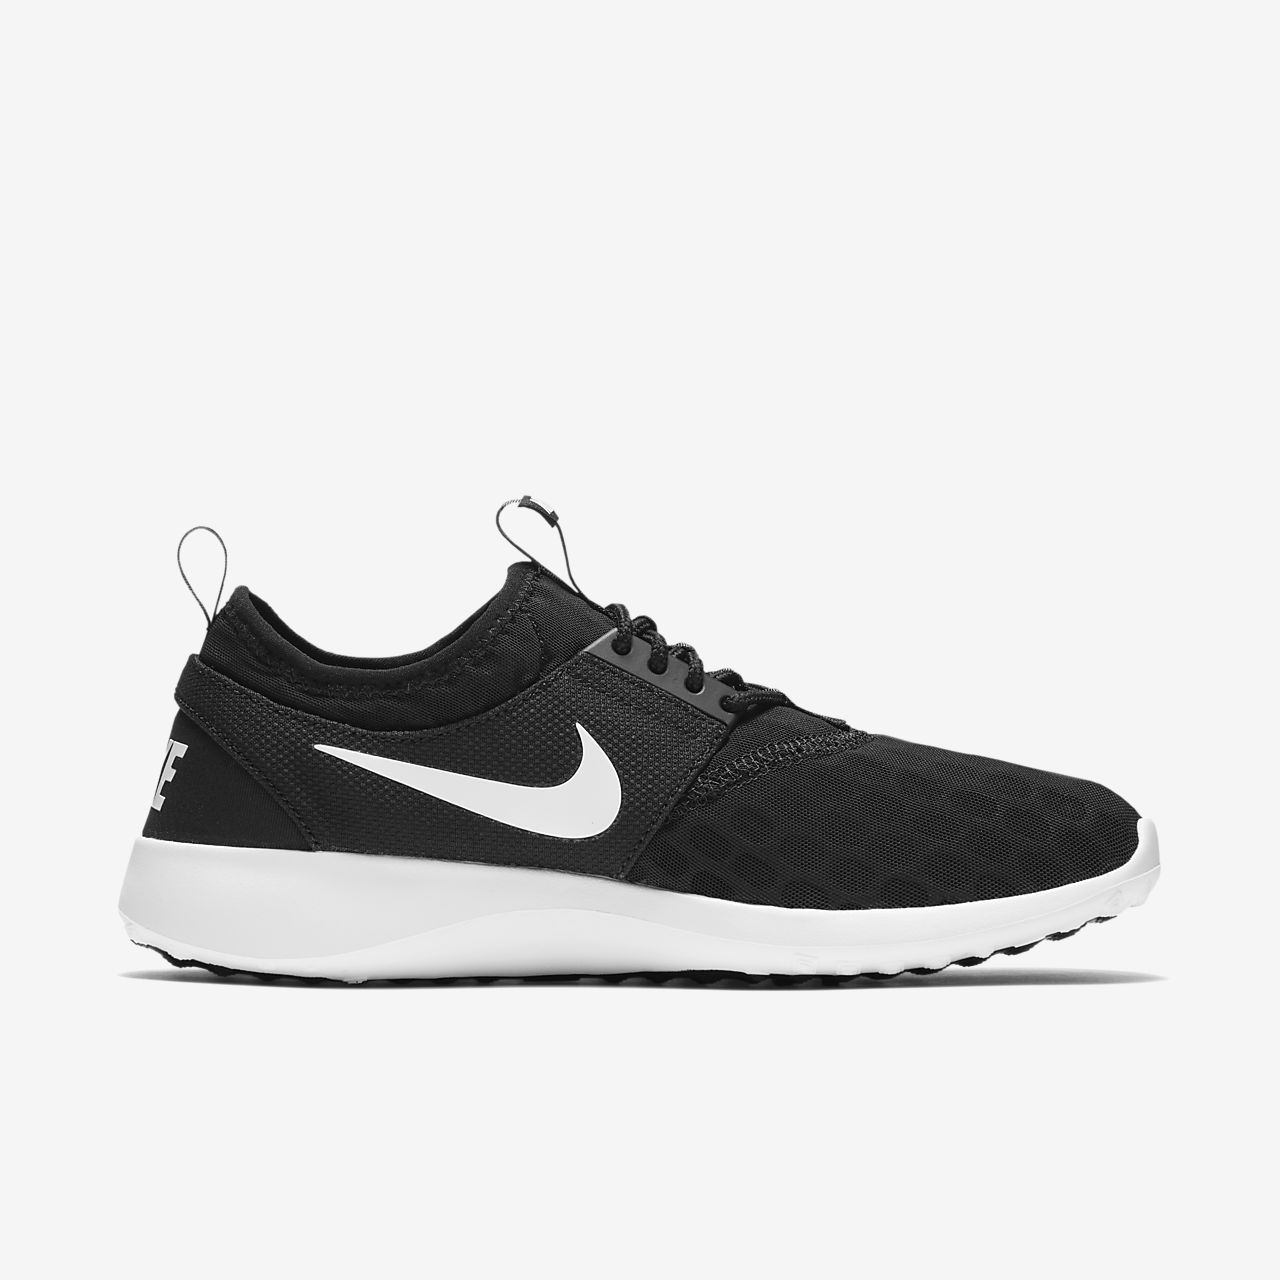 cf2883d76d7d2 Low Resolution Nike Juvenate Women's Shoe Nike Juvenate Women's Shoe